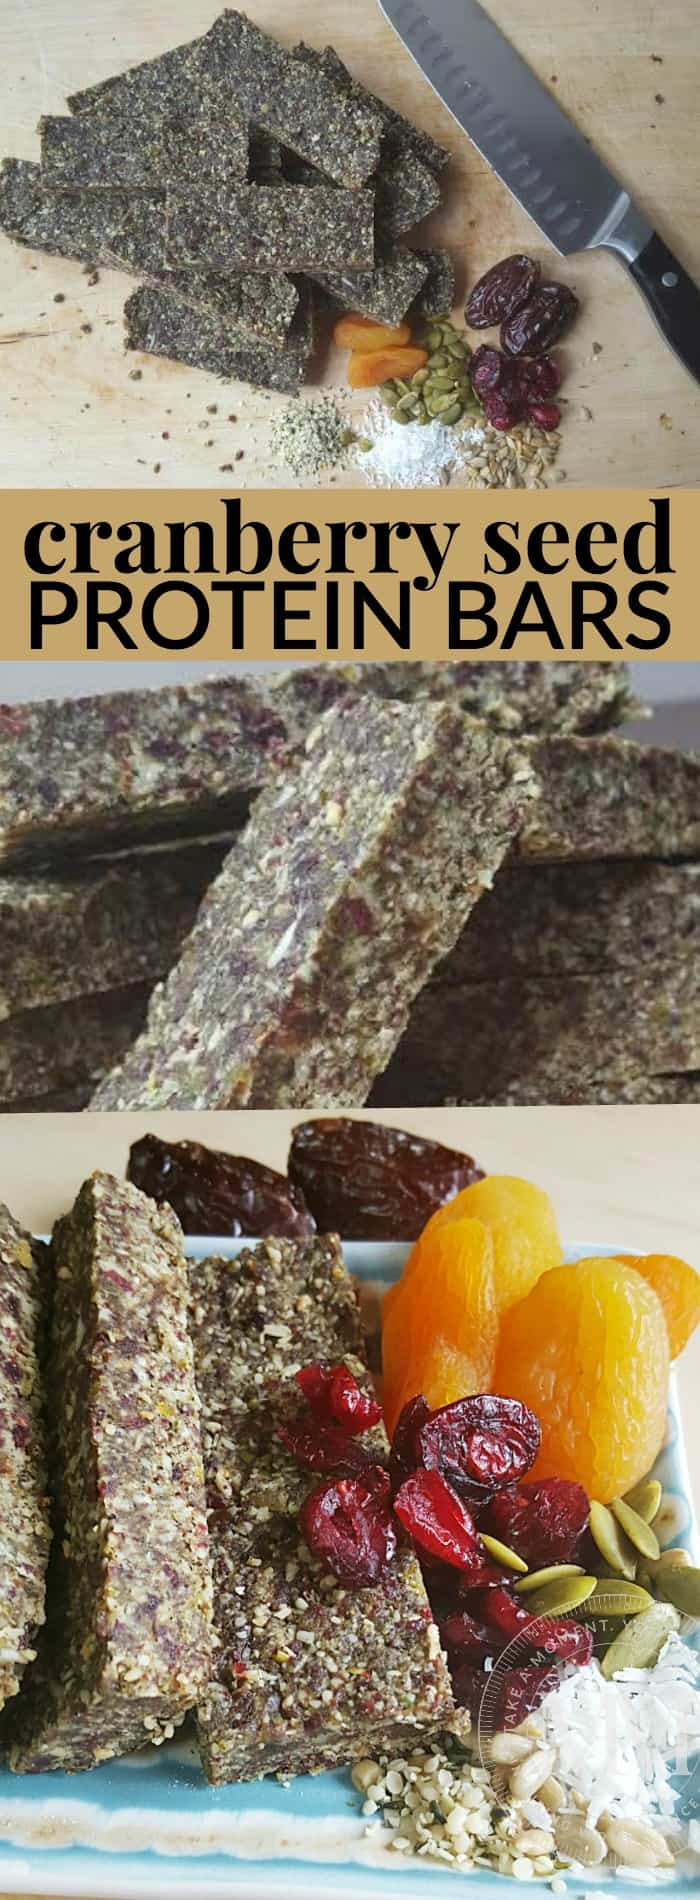 cranberry seed protein bars